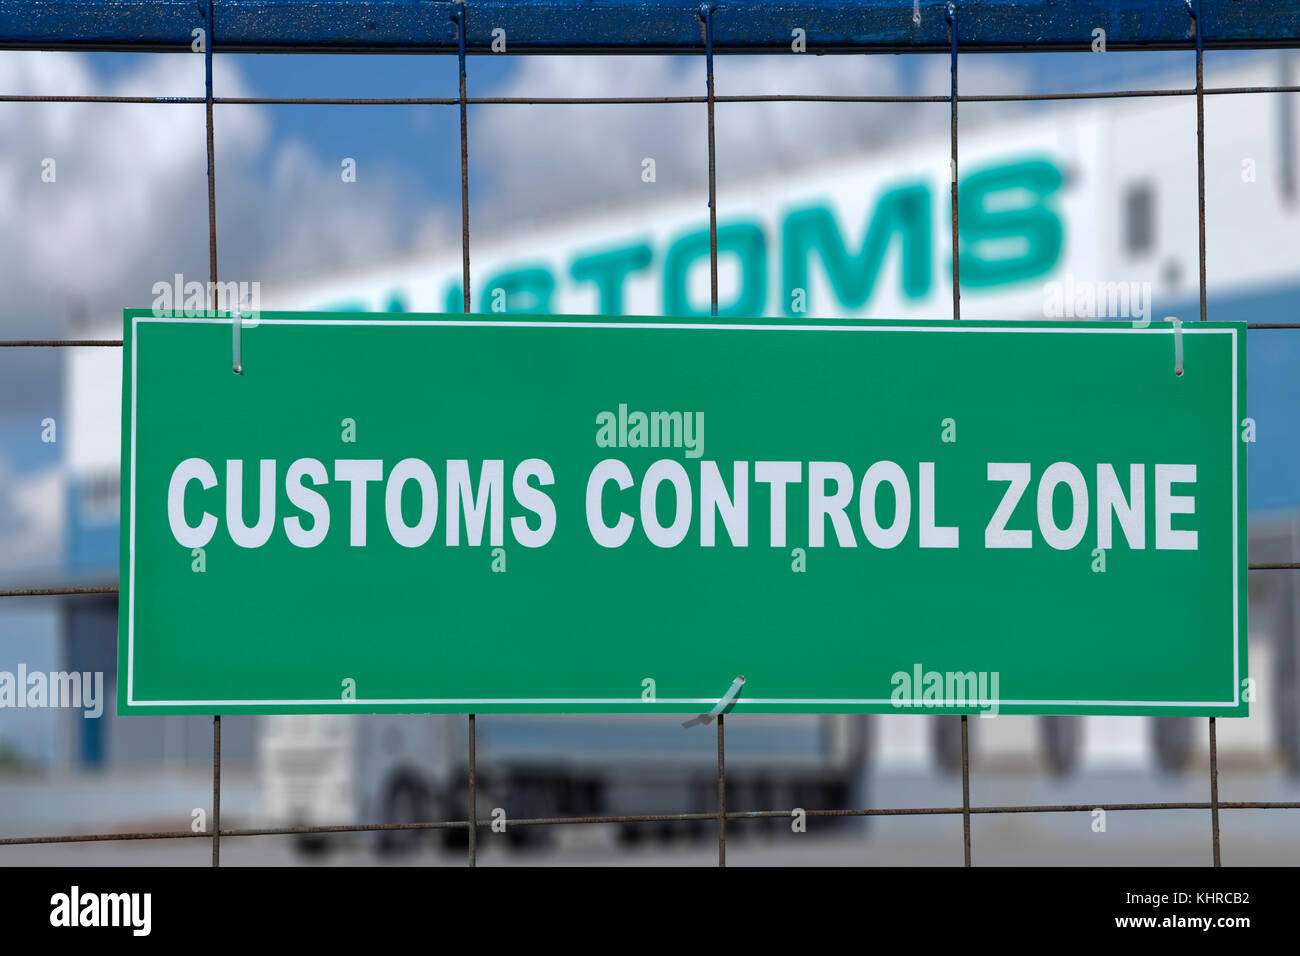 Logistics complex behind the green sign, customs control zone. - Stock Image